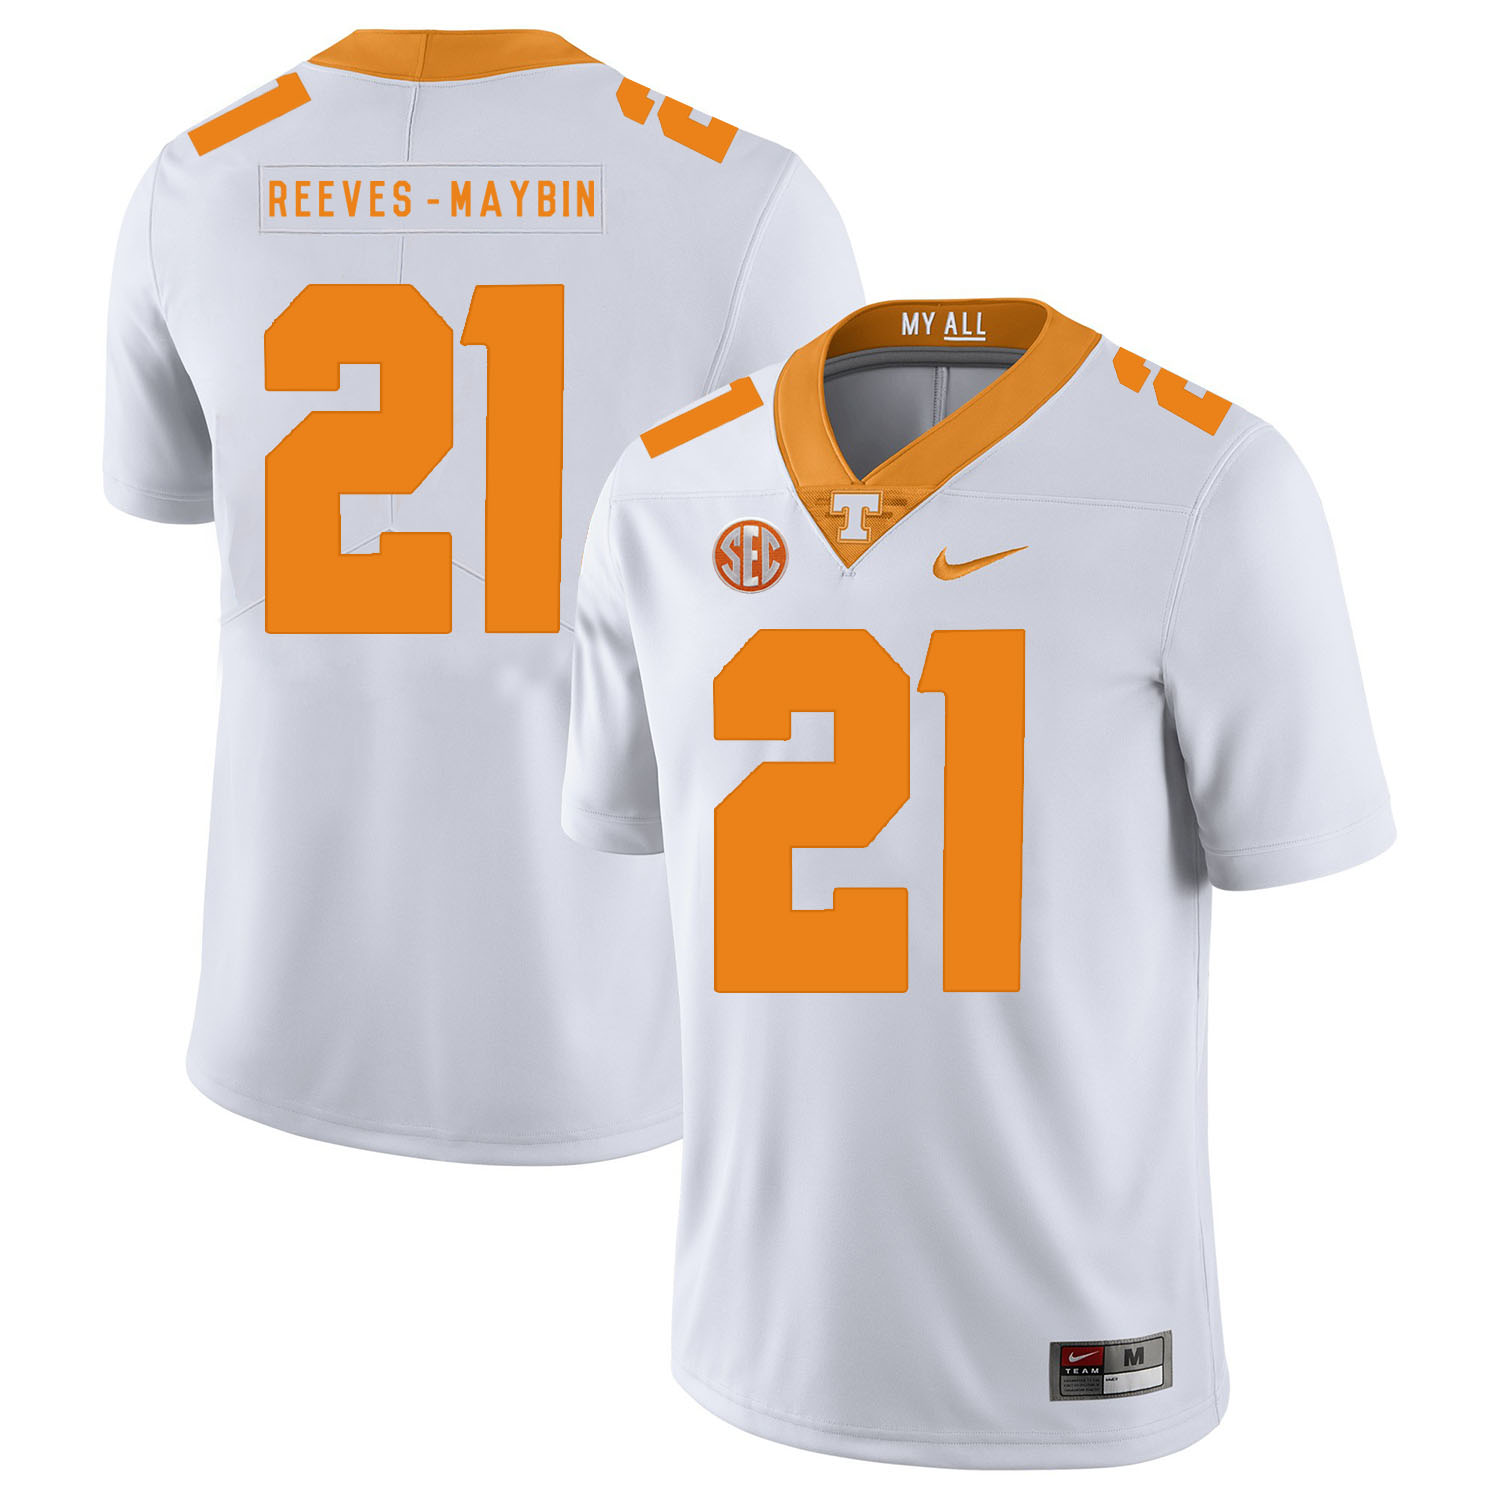 Tennessee Volunteers 21 Jalen Reeves-Maybin White Nike College Football Jersey